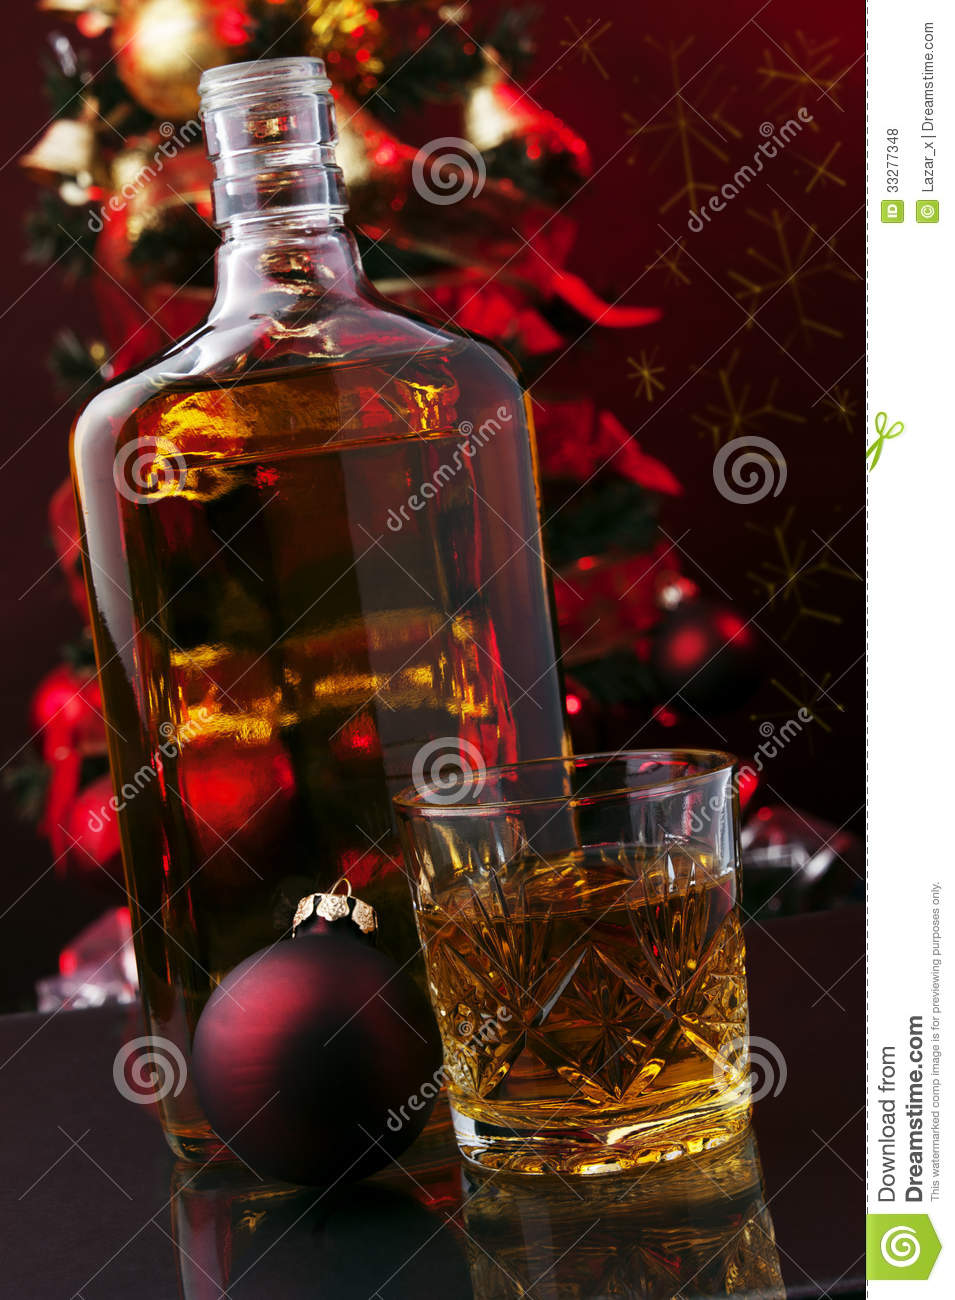 Whiskey and Christmas tree stock photo Image of festive